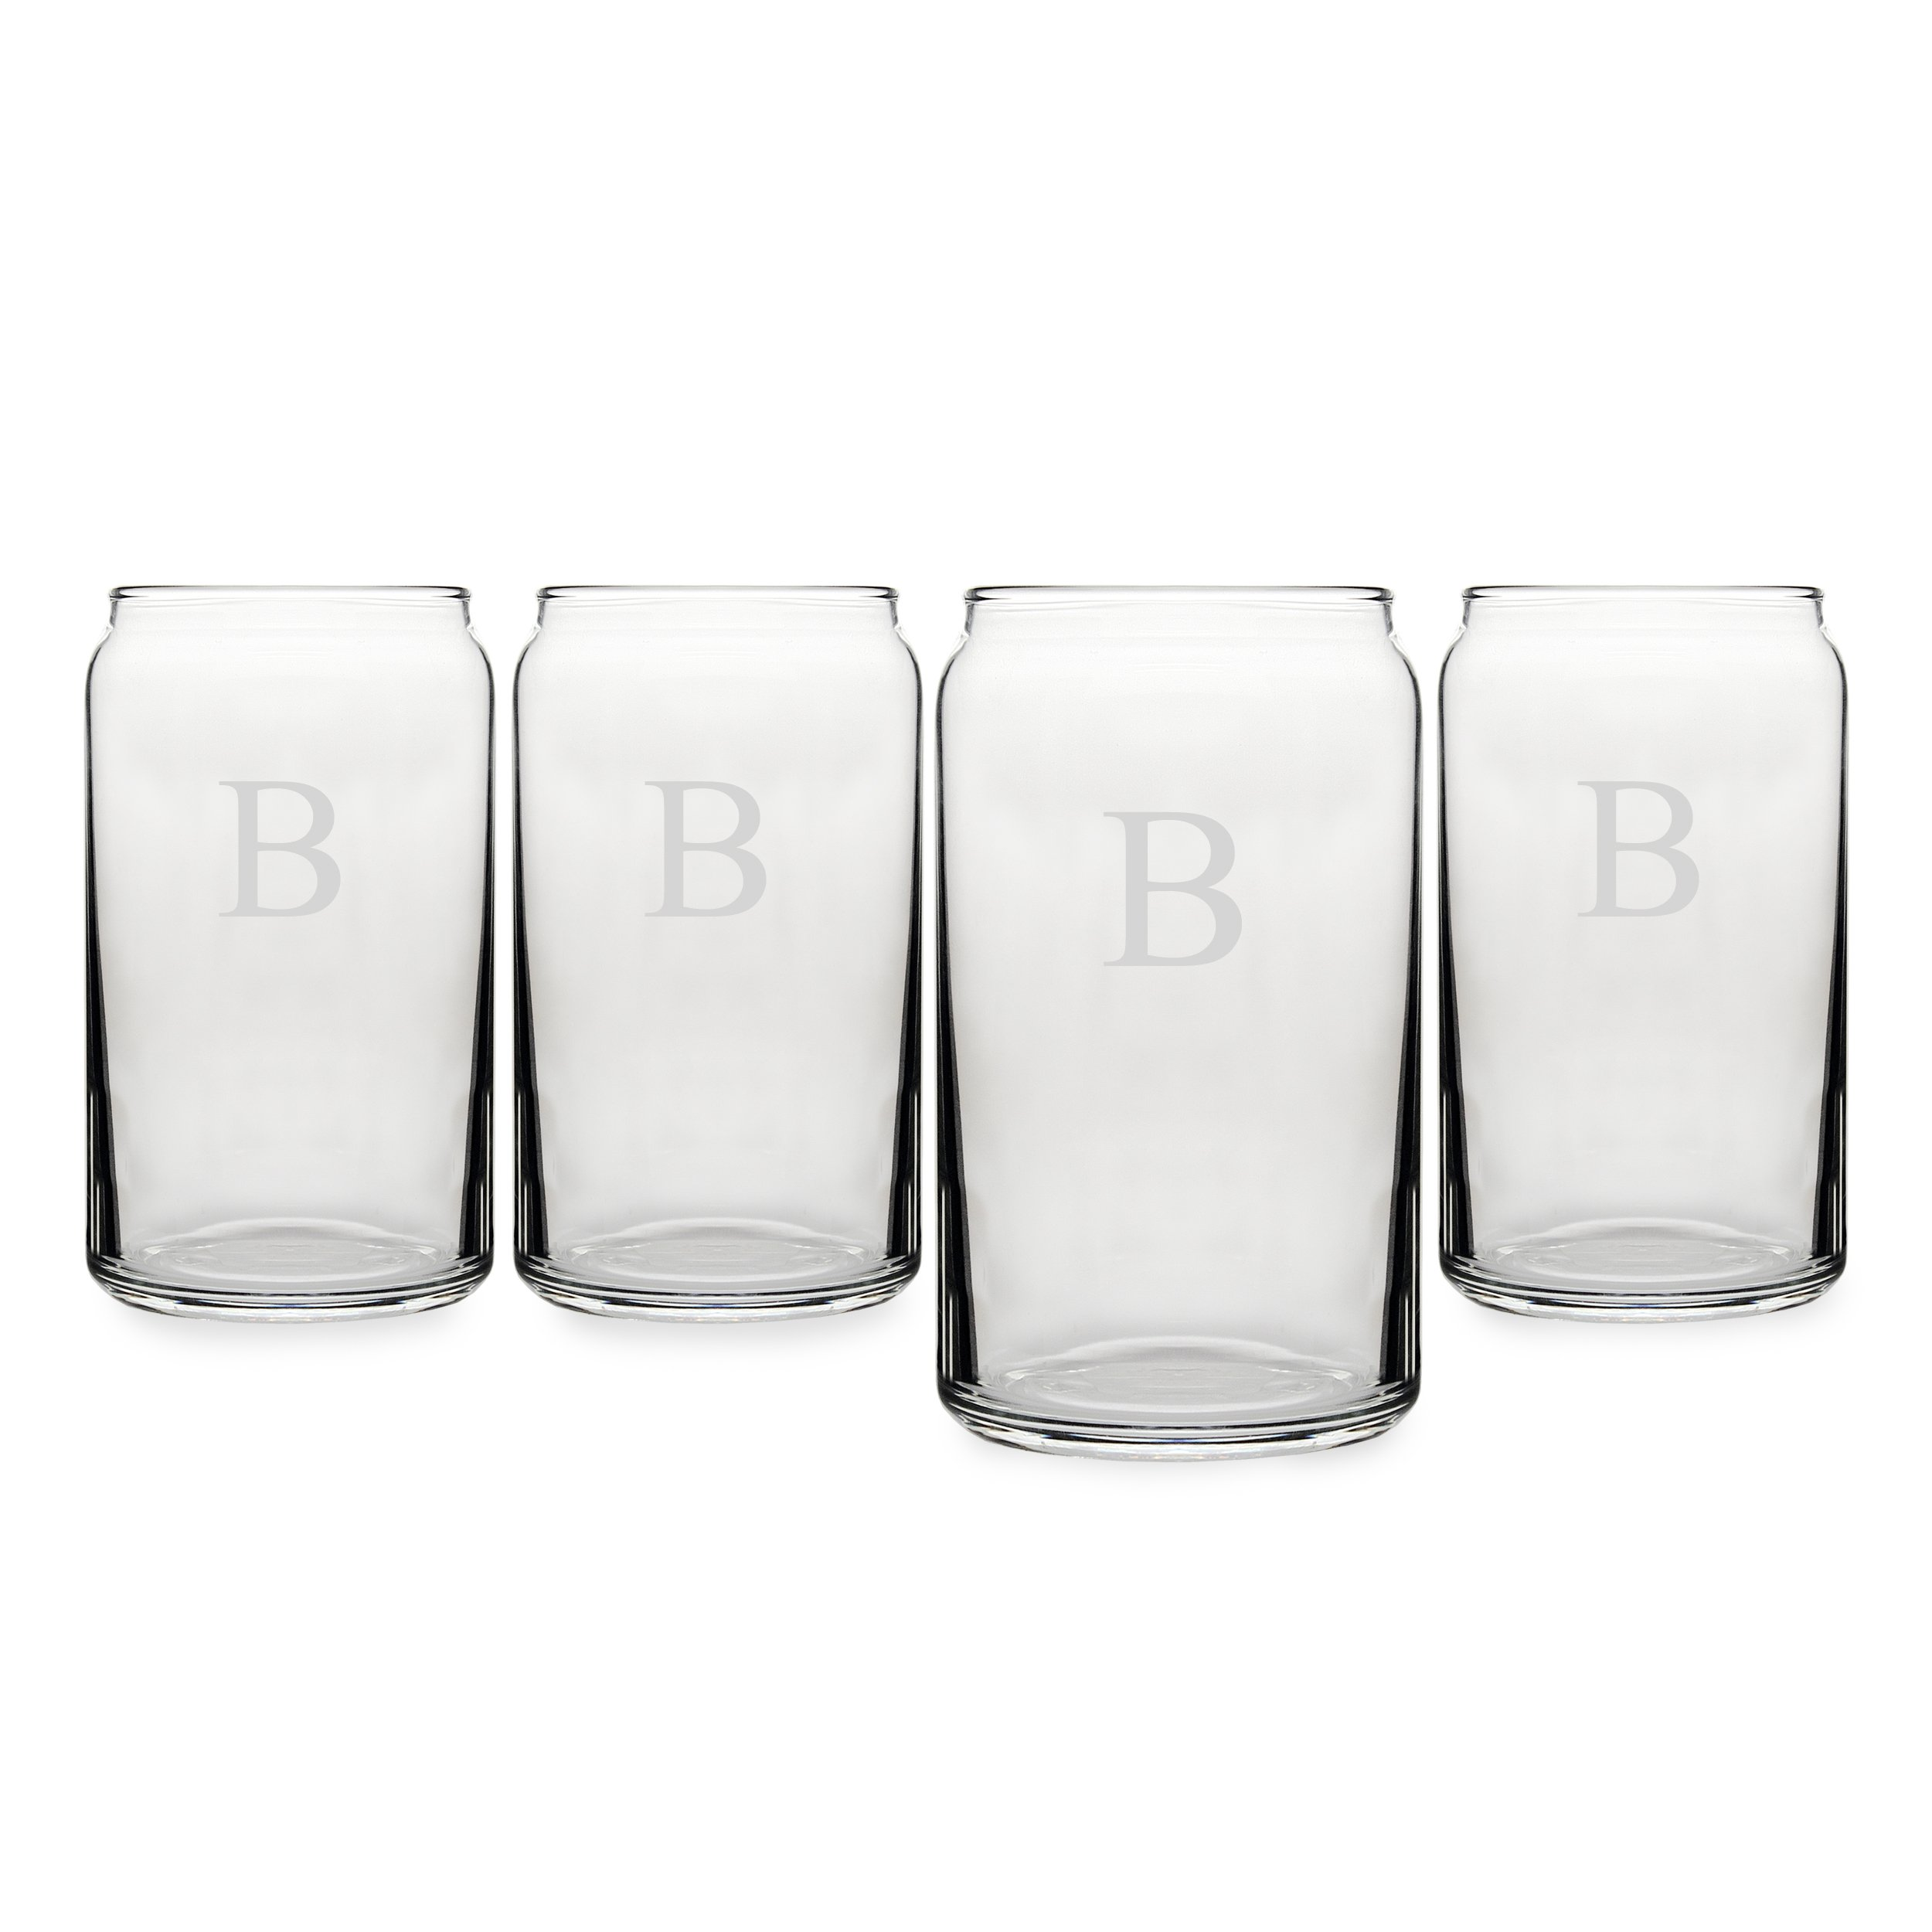 Cathy's Concepts Personalized Craft Beer Can Glasses, Set of 4, Letter B